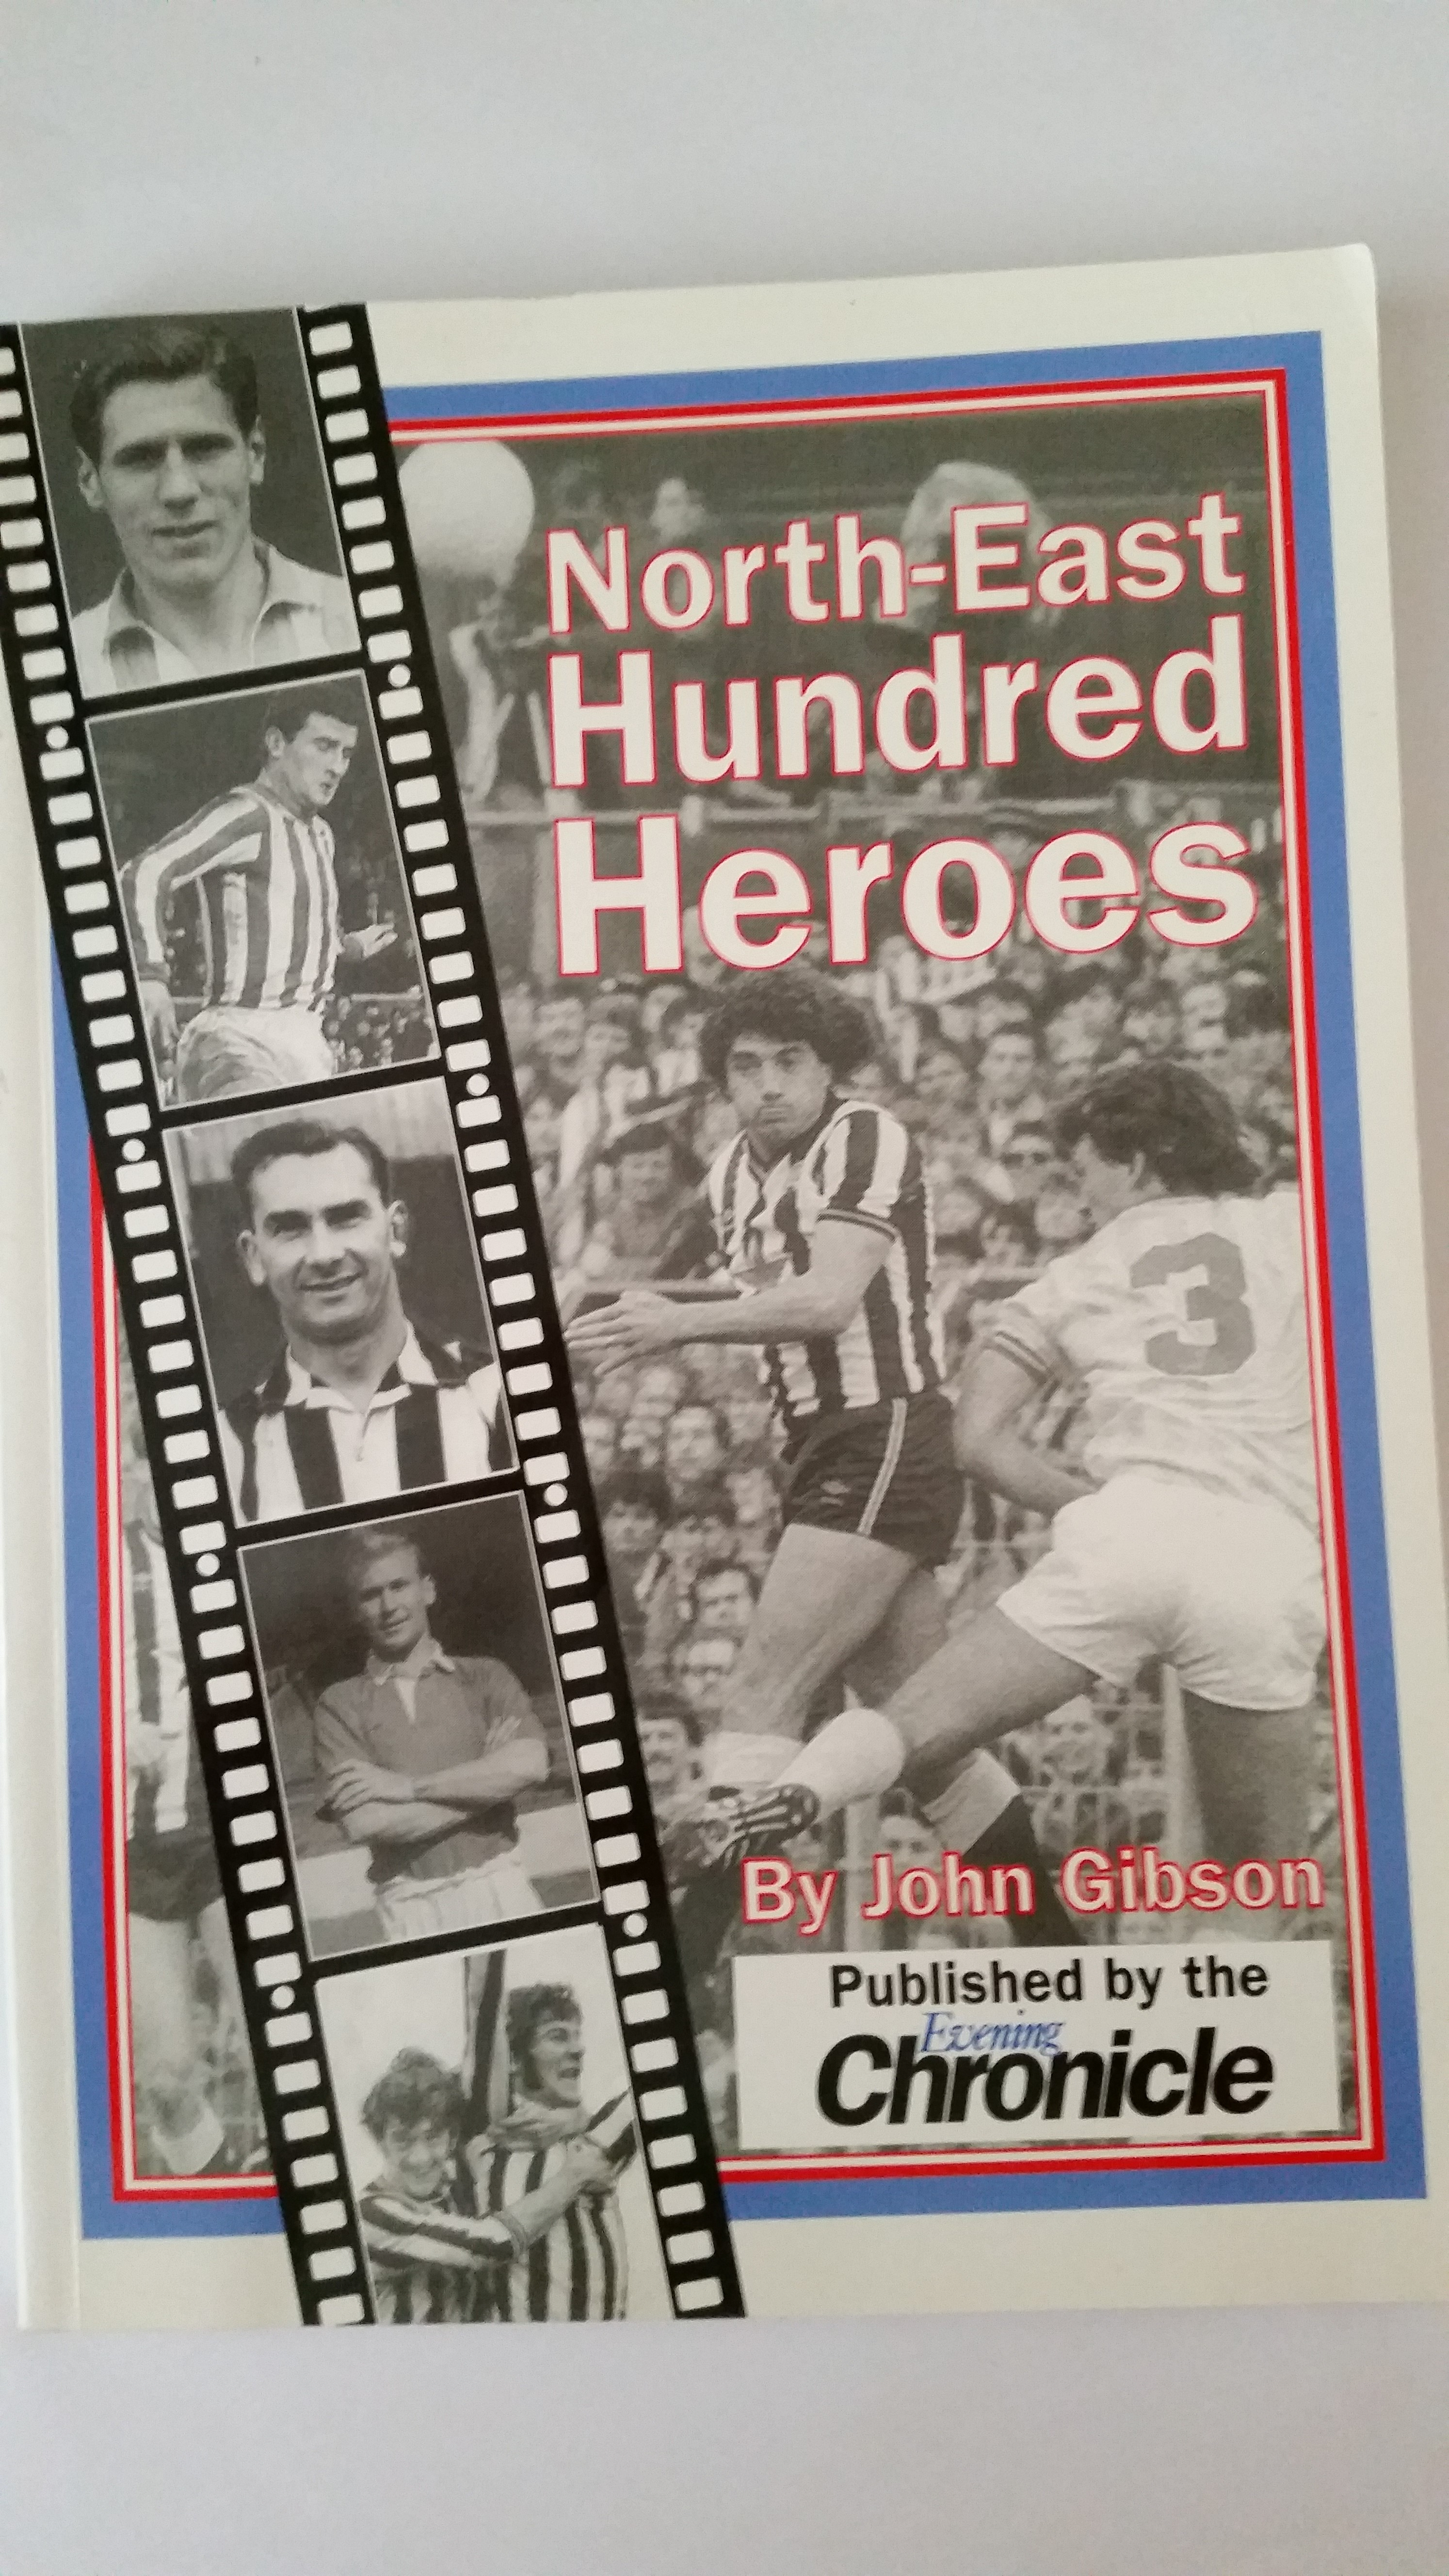 FOOTBALL, signed books by Wilf Mannion, History of the World Cup & North-East Hundred Heroes, EX, 2